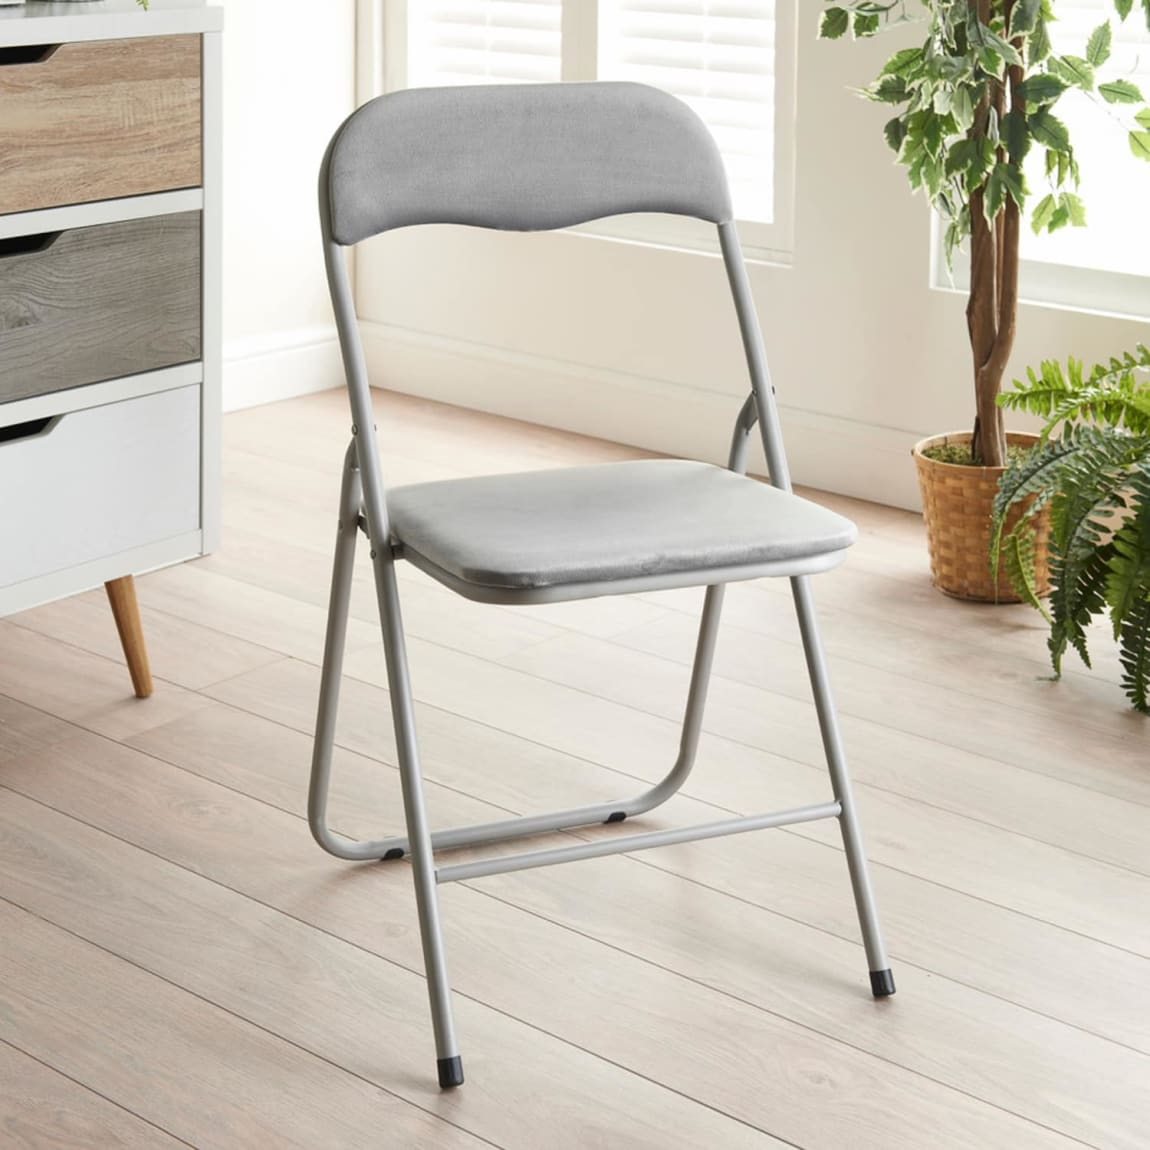 Luxe Velvet Folding Chair - Grey